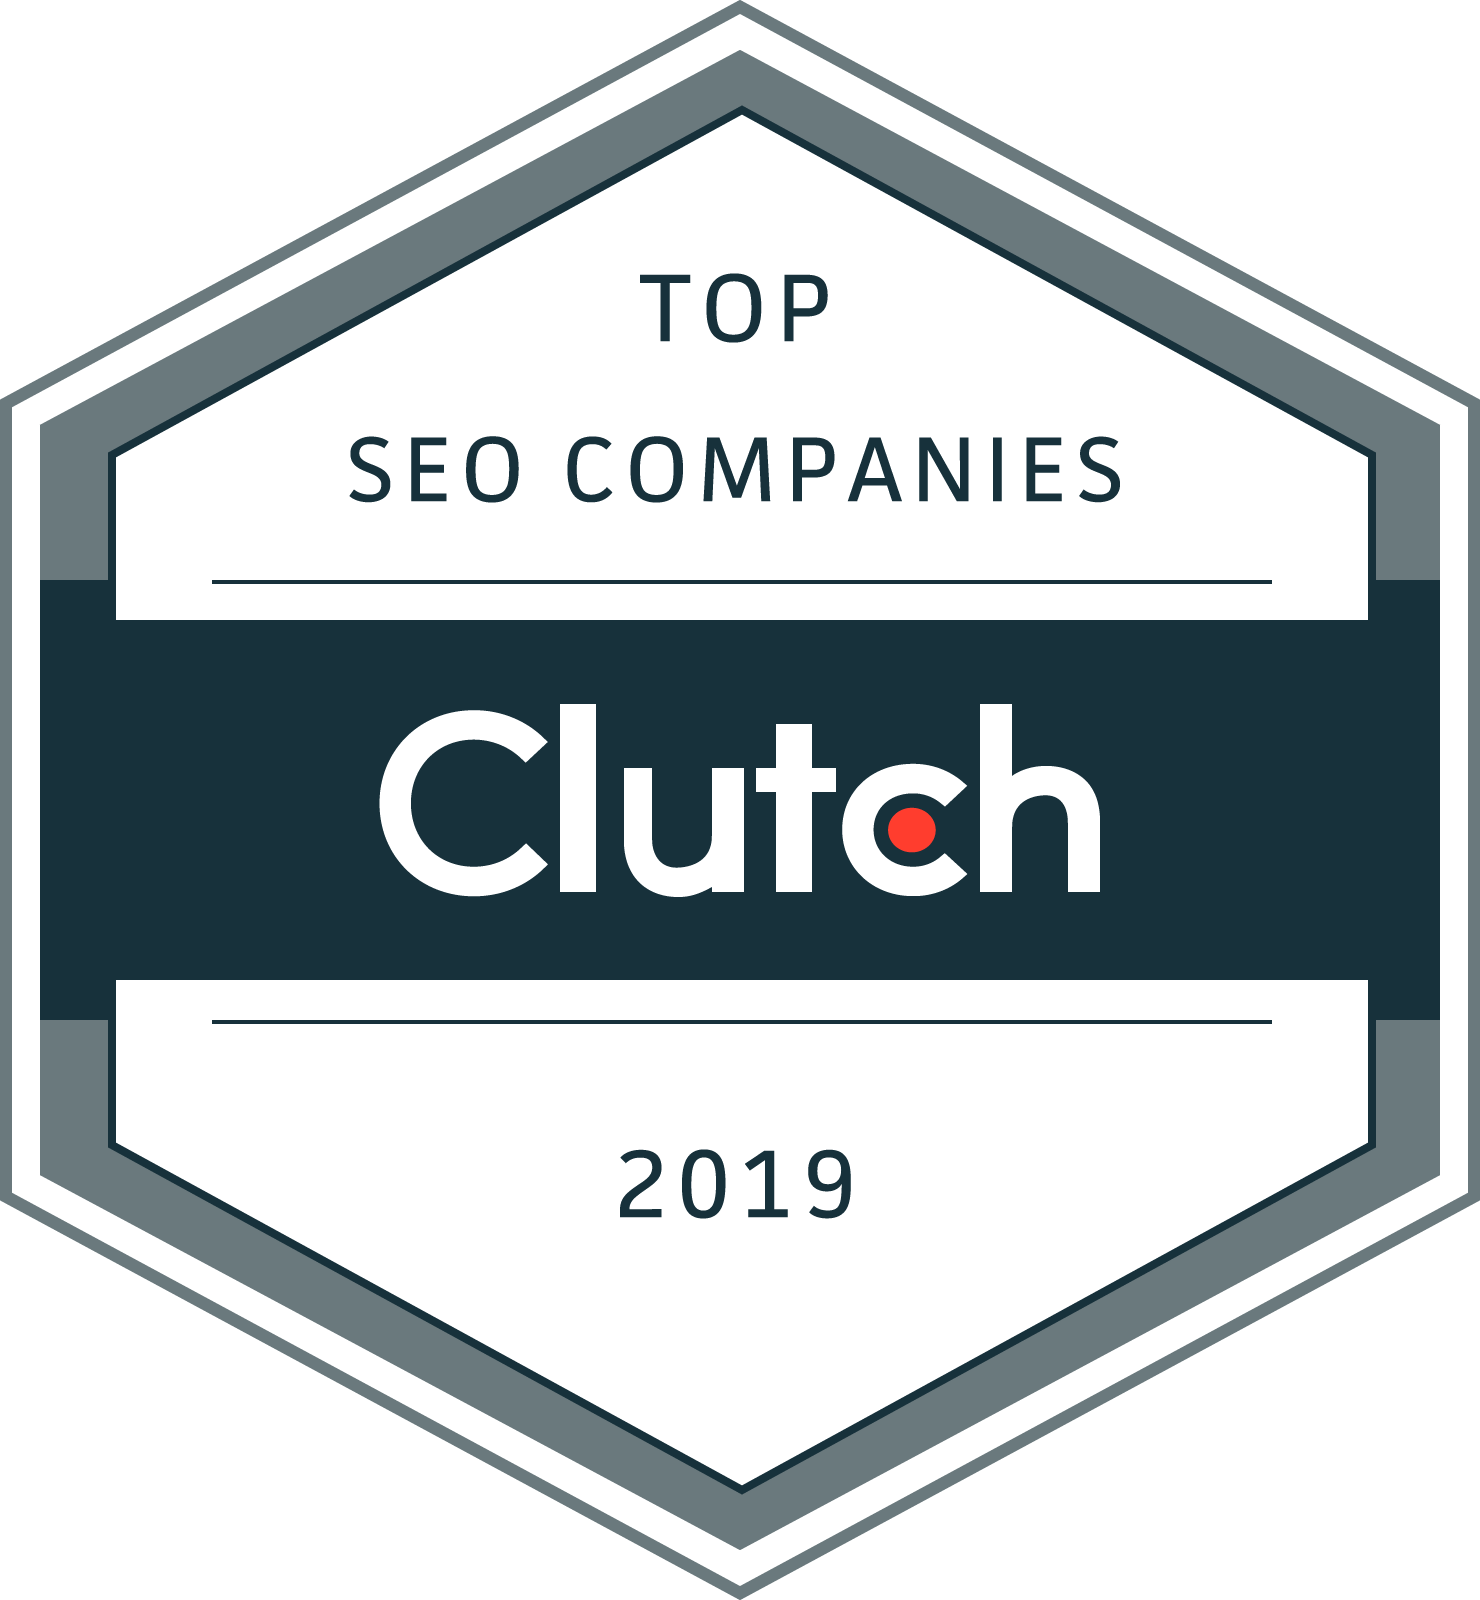 Clutch Top SEO Company